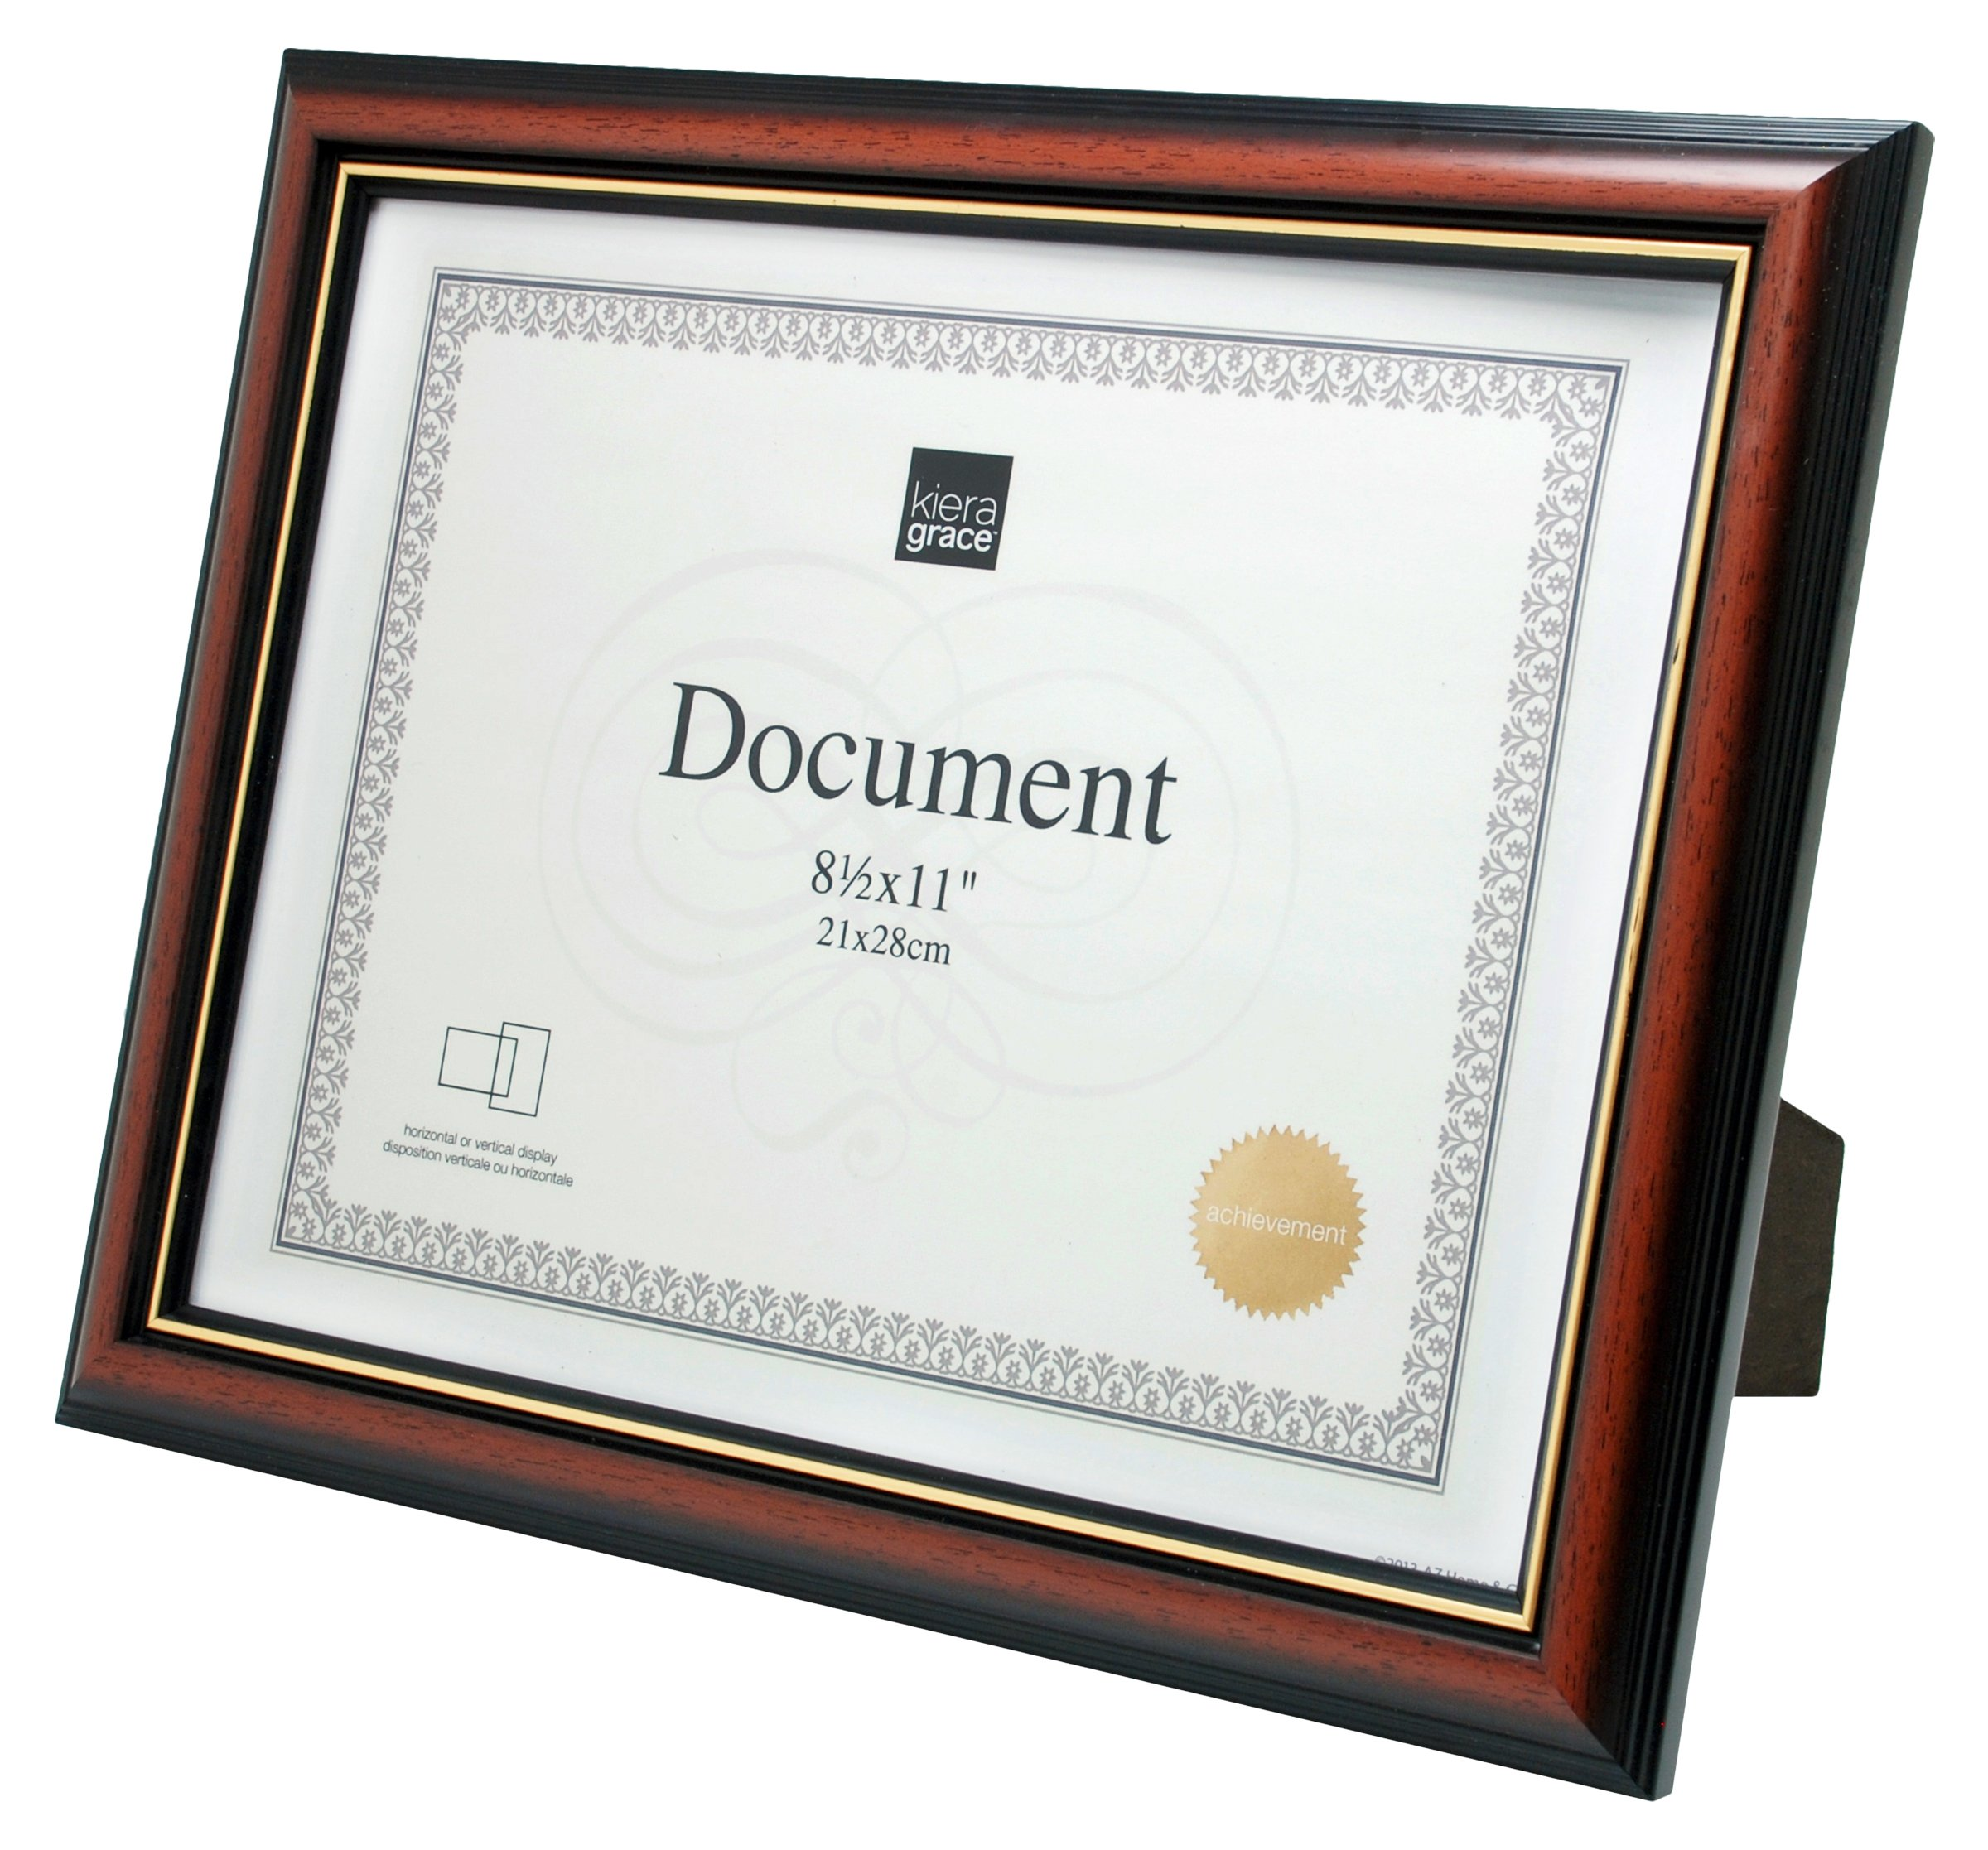 kieragrace Kylie Document Frame, 8.5 by 11-Inch, 12 Pack, Brown with Gold Border